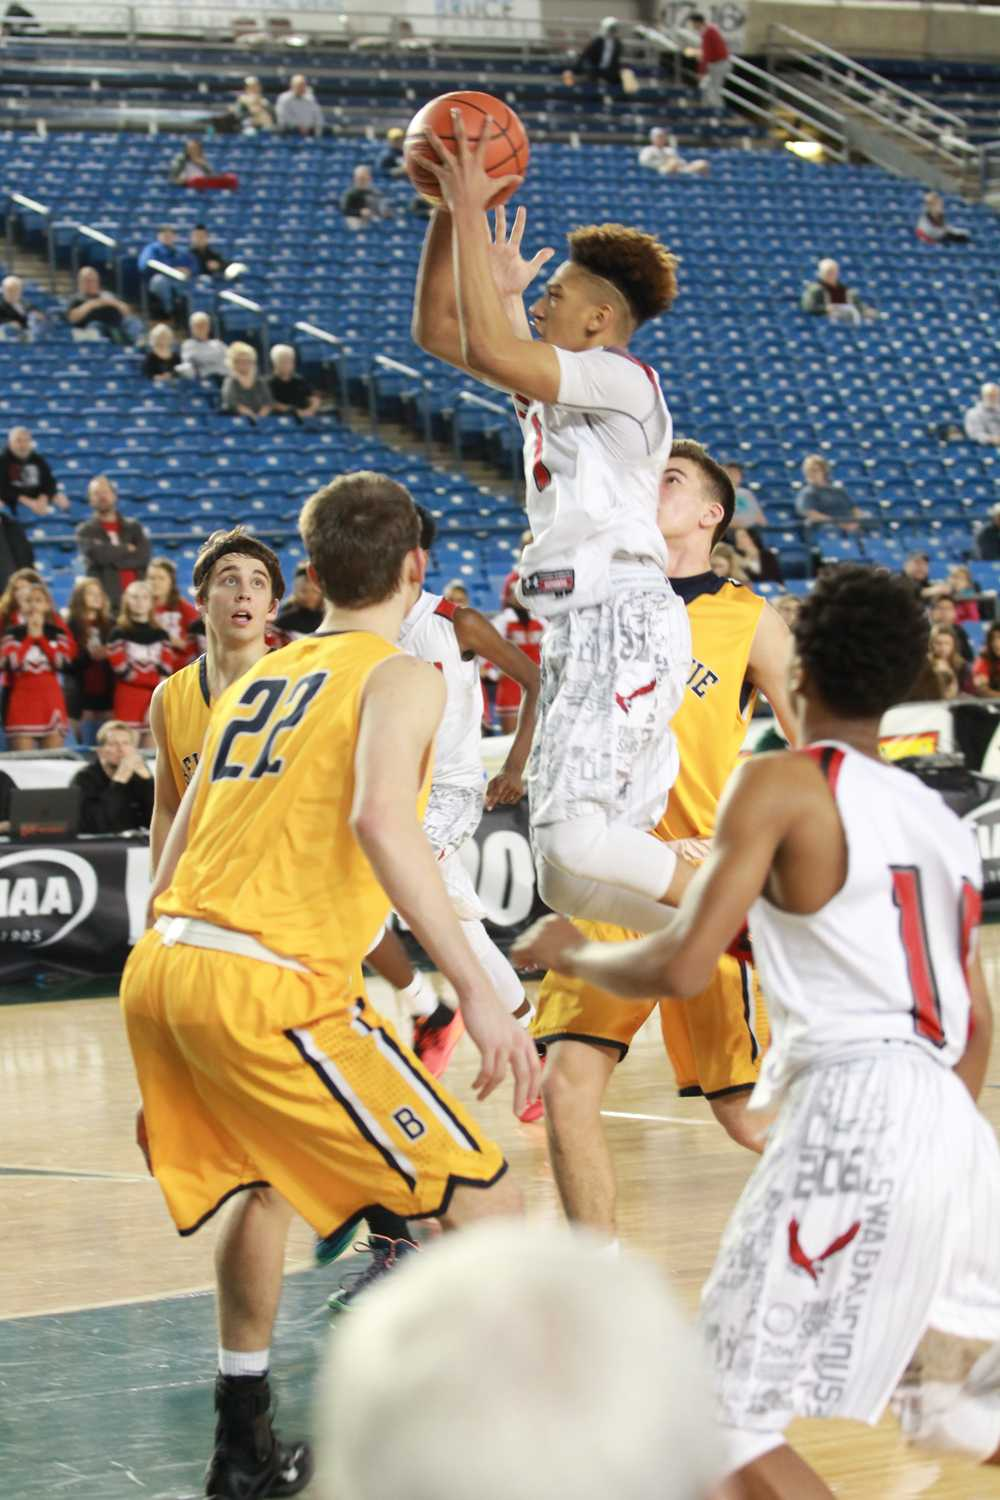 Davon Bolton goes up against a pack of Wolverines during the 3A State Tournament game against Bellevue. The Eagles came up short but finished in sixth place.